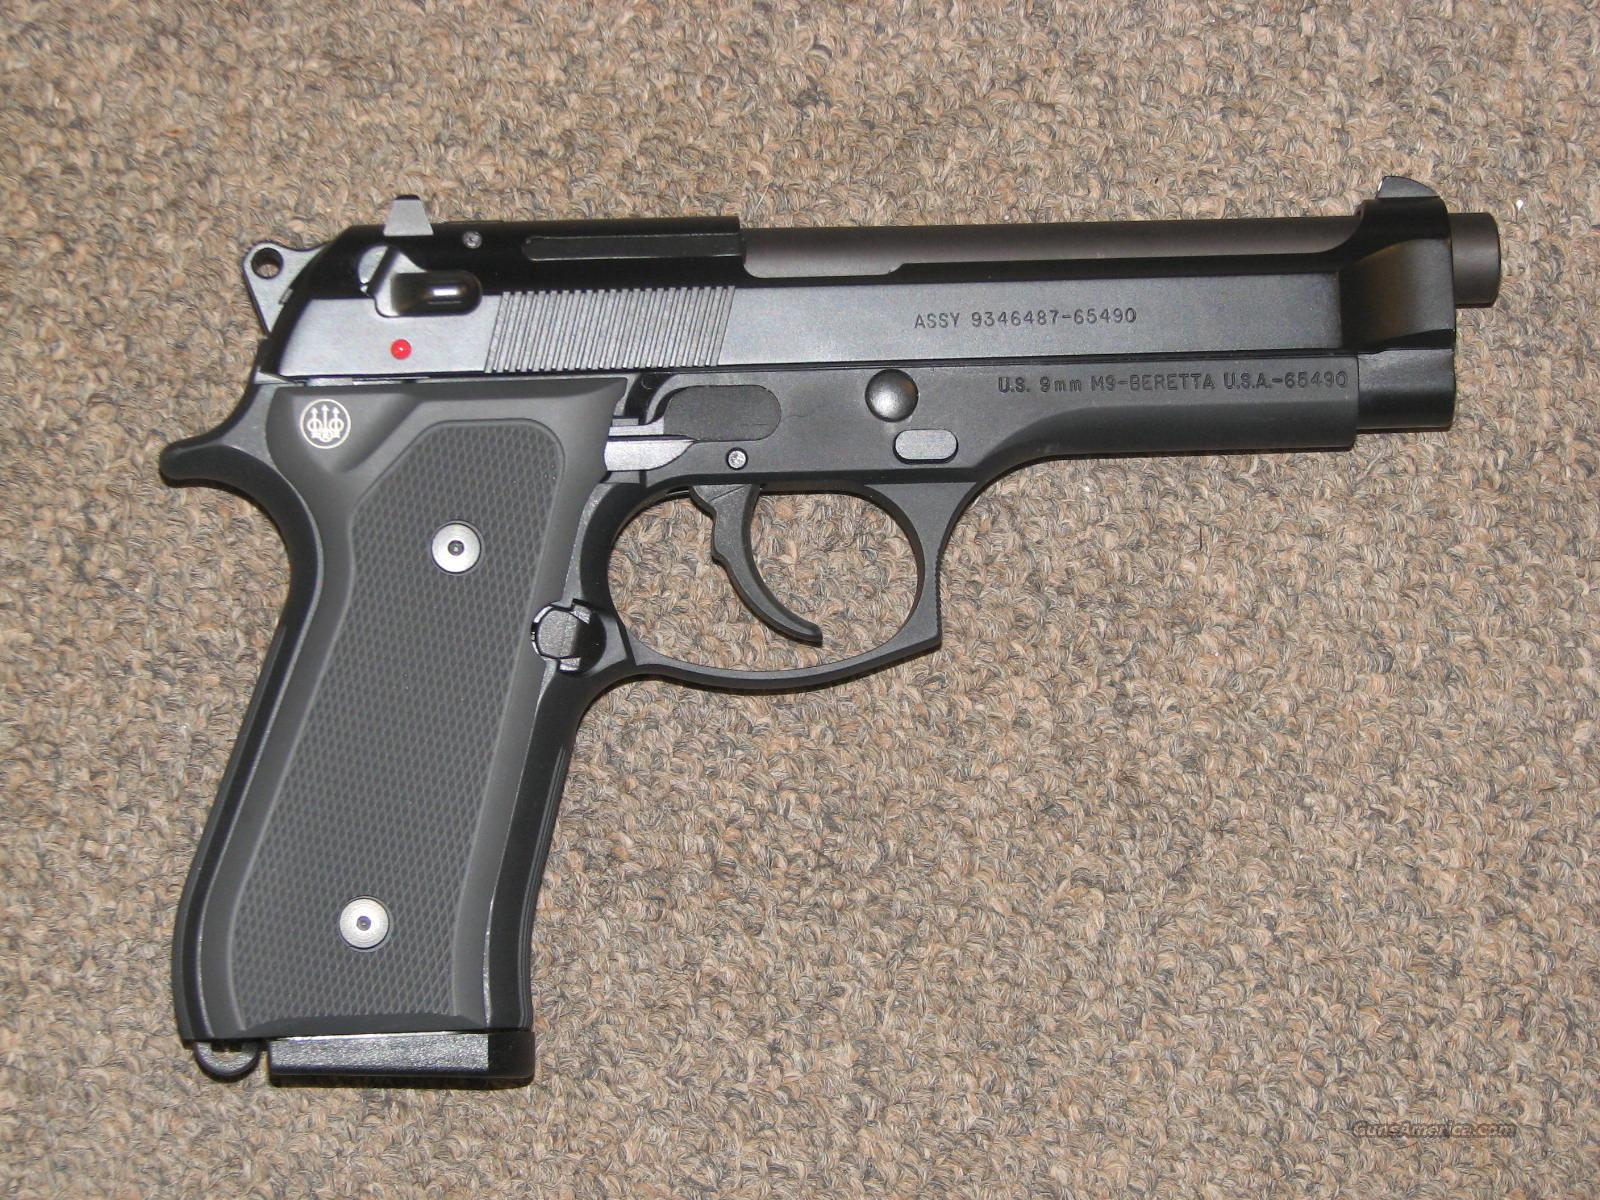 BERETTA M9 9mm - LIKE NEW!  Guns > Pistols > Beretta Pistols > Model 92 Series